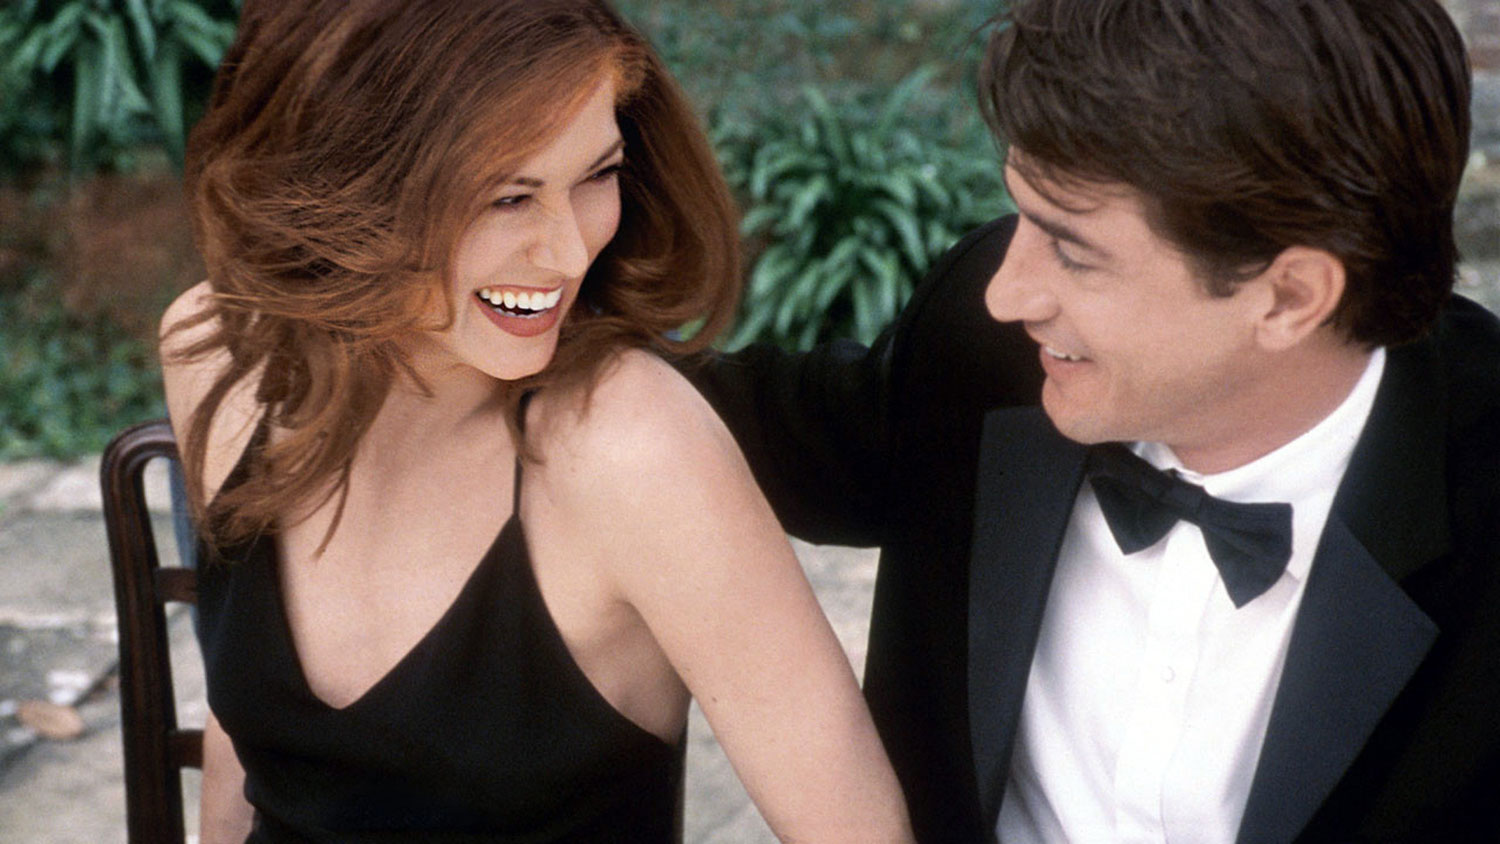 When all else fails, hire a male escort. It's been two years since Kat Ellis (Debra Messing) was dumped by her ex-fiancée Jeffrey (Jeremy Sheffield). Now that her younger half-sister (Amy Adams) is getting married, who is the groom's best man? None other than Jeffrey. Of course Kat has to let him see that she […]